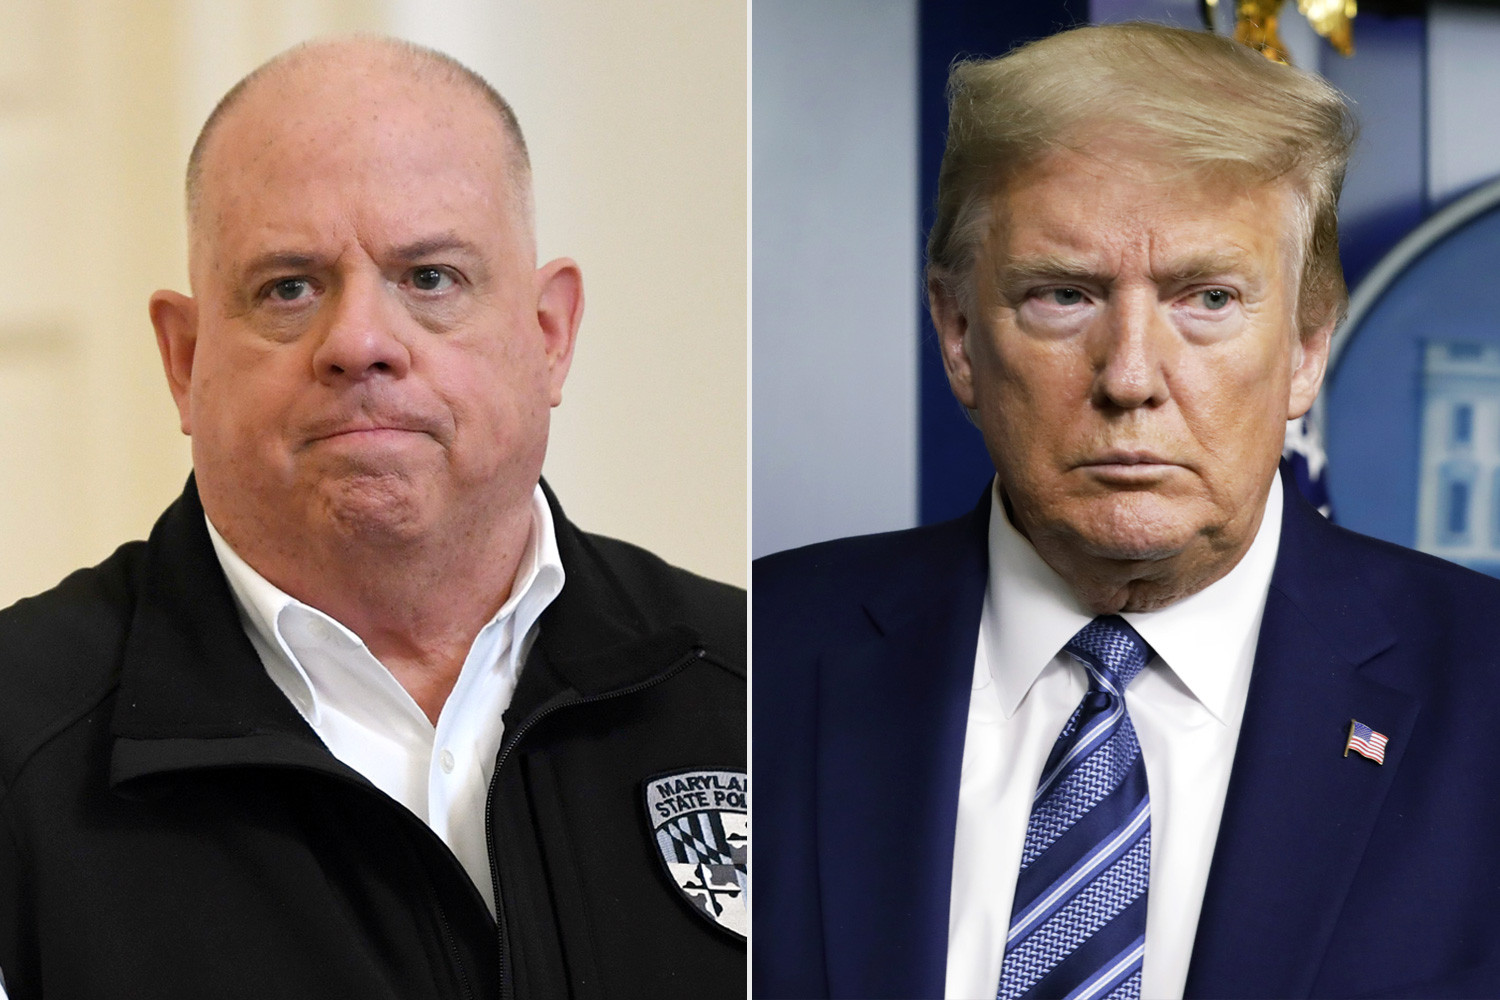 What Trump is doing is outrageous and an assault on our democracy - Maryland Governor Larry Hogan (video)